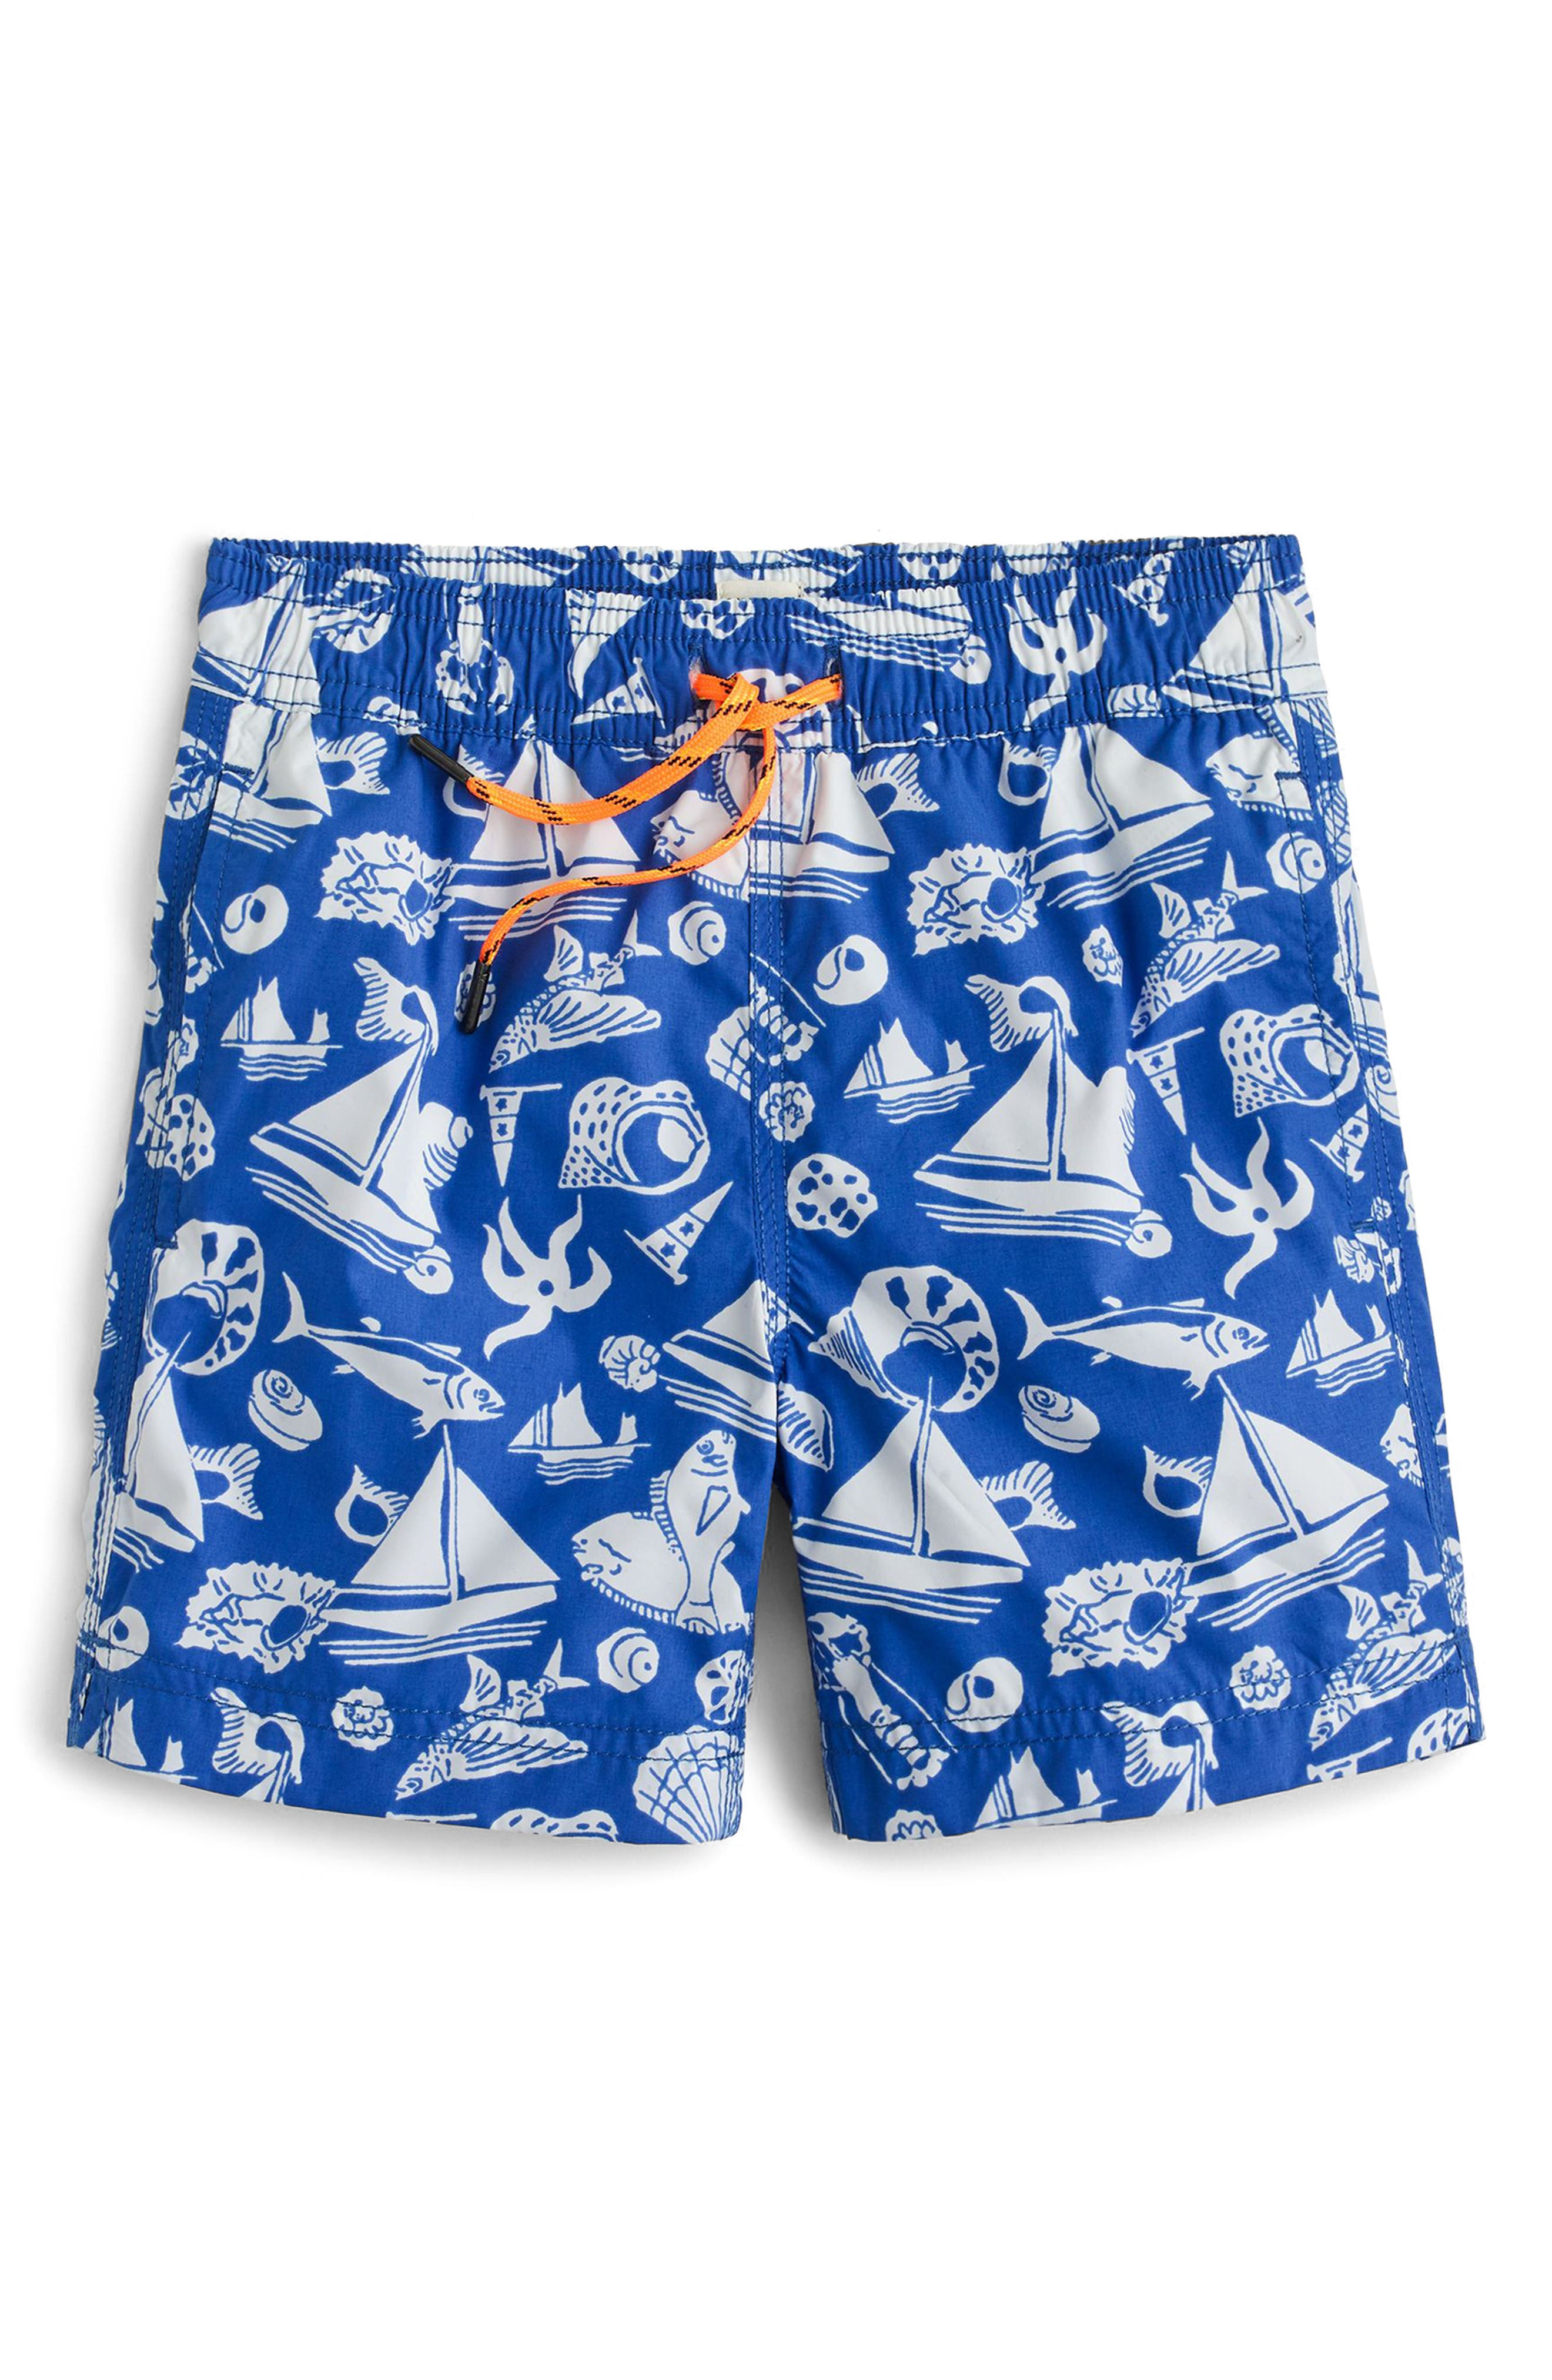 Seaside Life Swim Trunks,                             Main thumbnail 1, color,                             Royal Bay